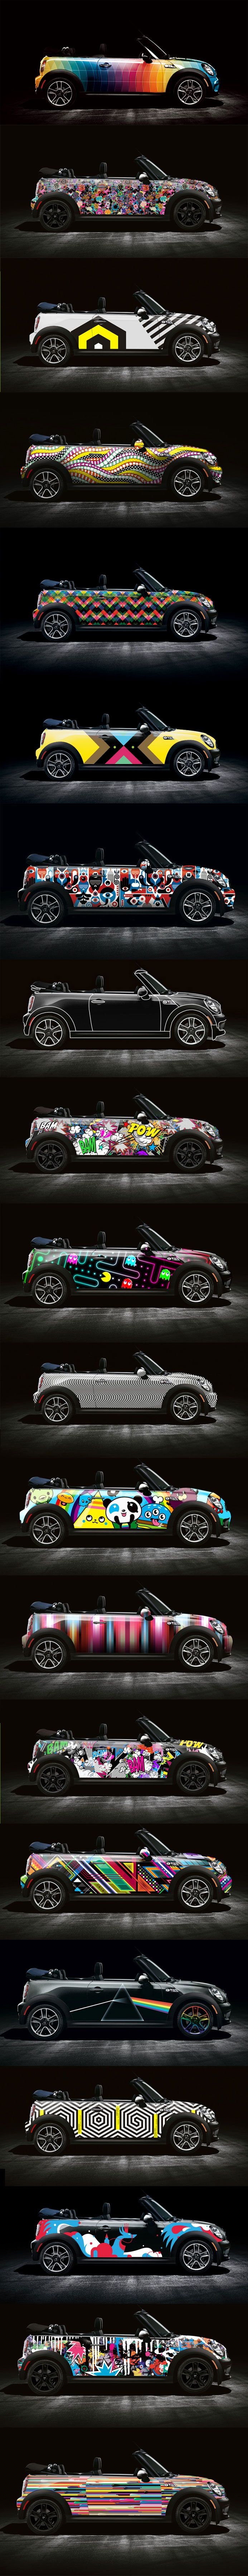 The Mini Wrap Show Learn How I Make Great Money By Sharing Cool Pic Like This Http Crazycashdeposits Com Mini Cooper Car Wrap Mini Cars